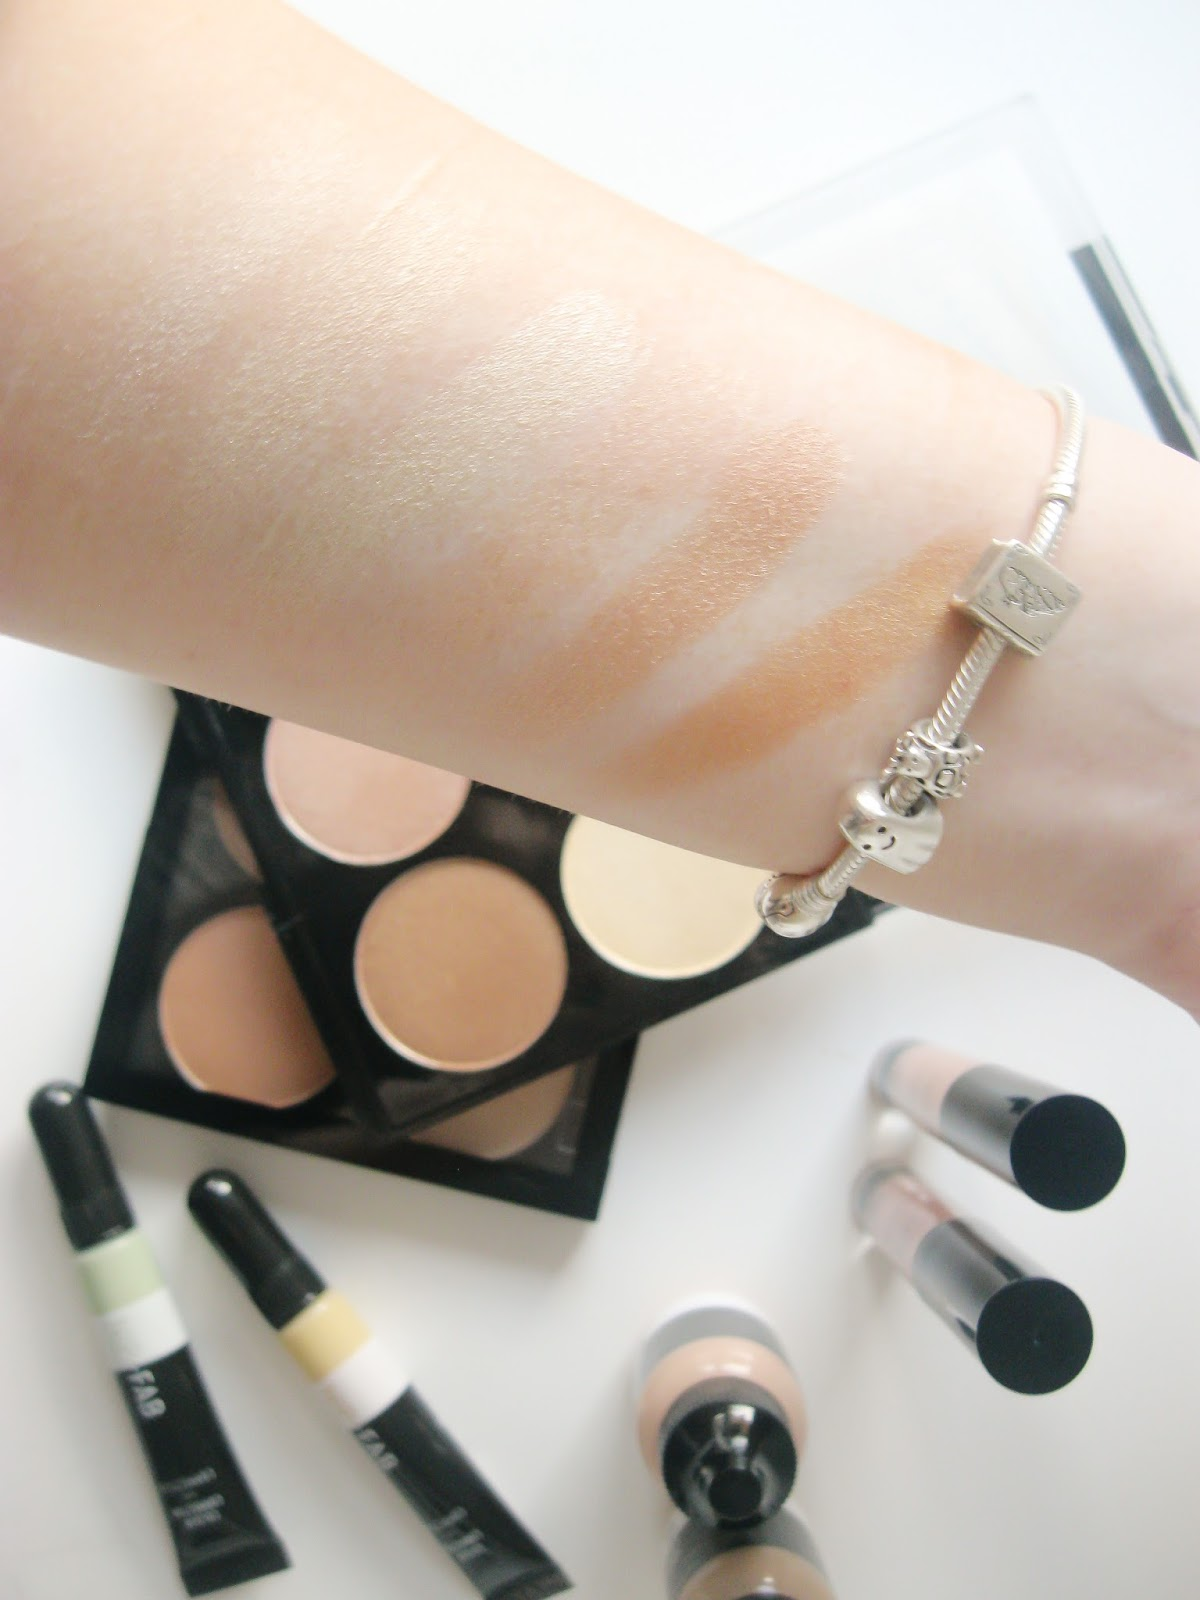 Nip and fab swatches